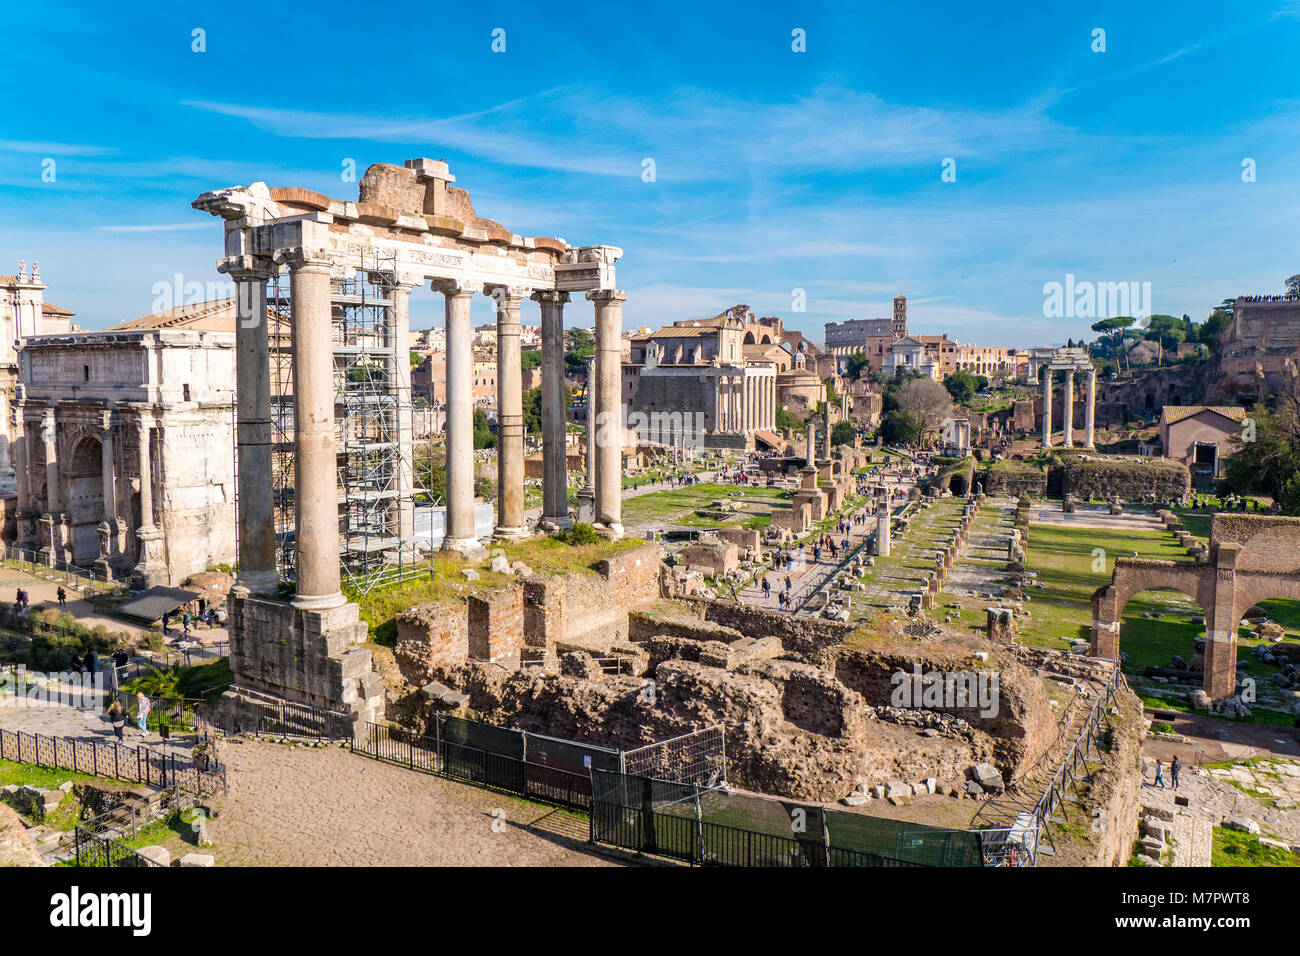 Roman Forum in Rome, Italy with the Palatine Hill and the Colosseum visible - Stock Image